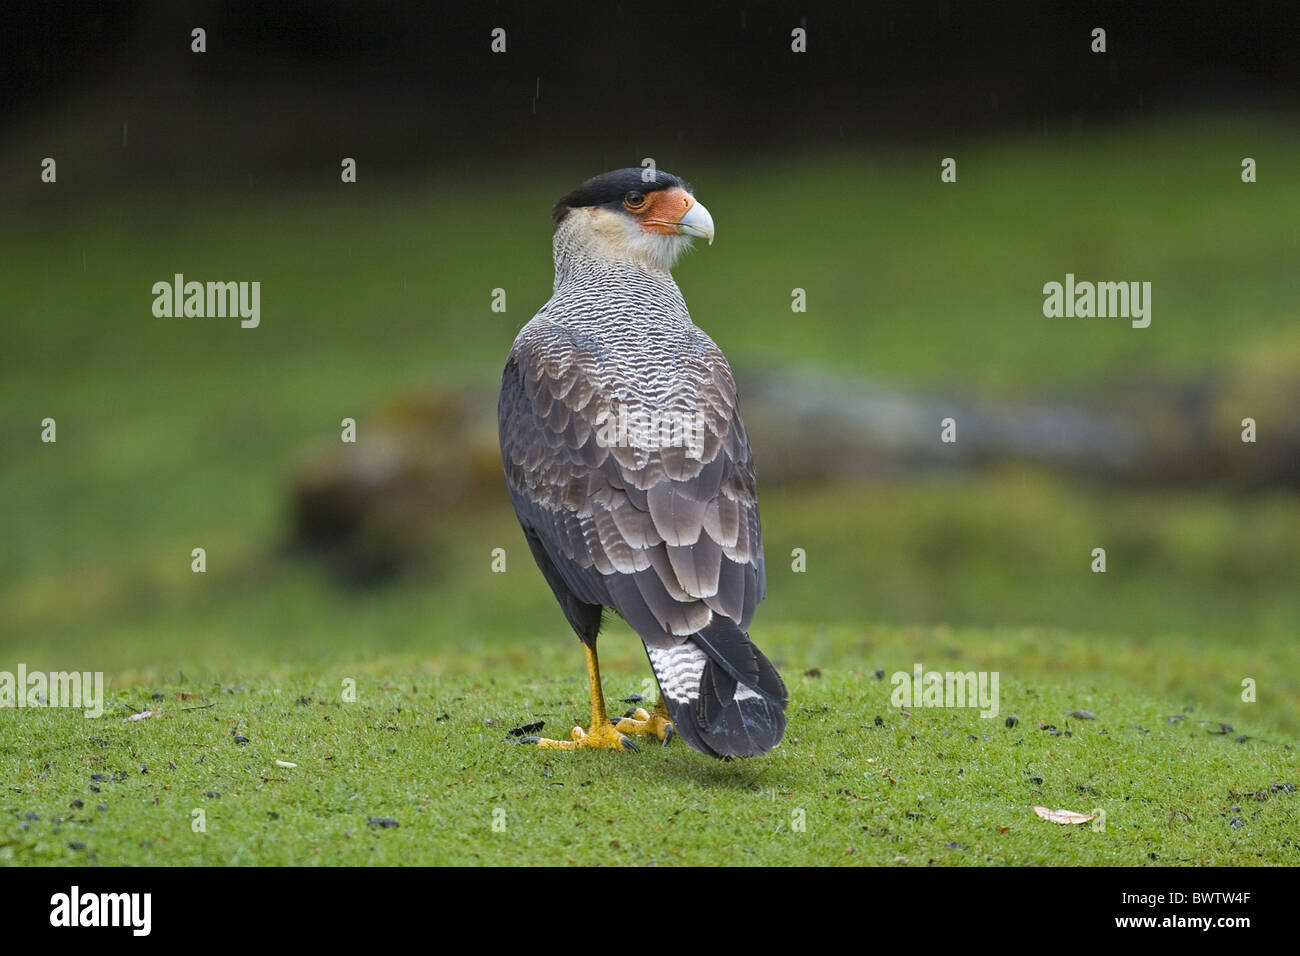 Southern Crested Caracara (Caracara p. plancus) adult, standing in rain, Tierra del Fuego N.P., Chile - Stock Image